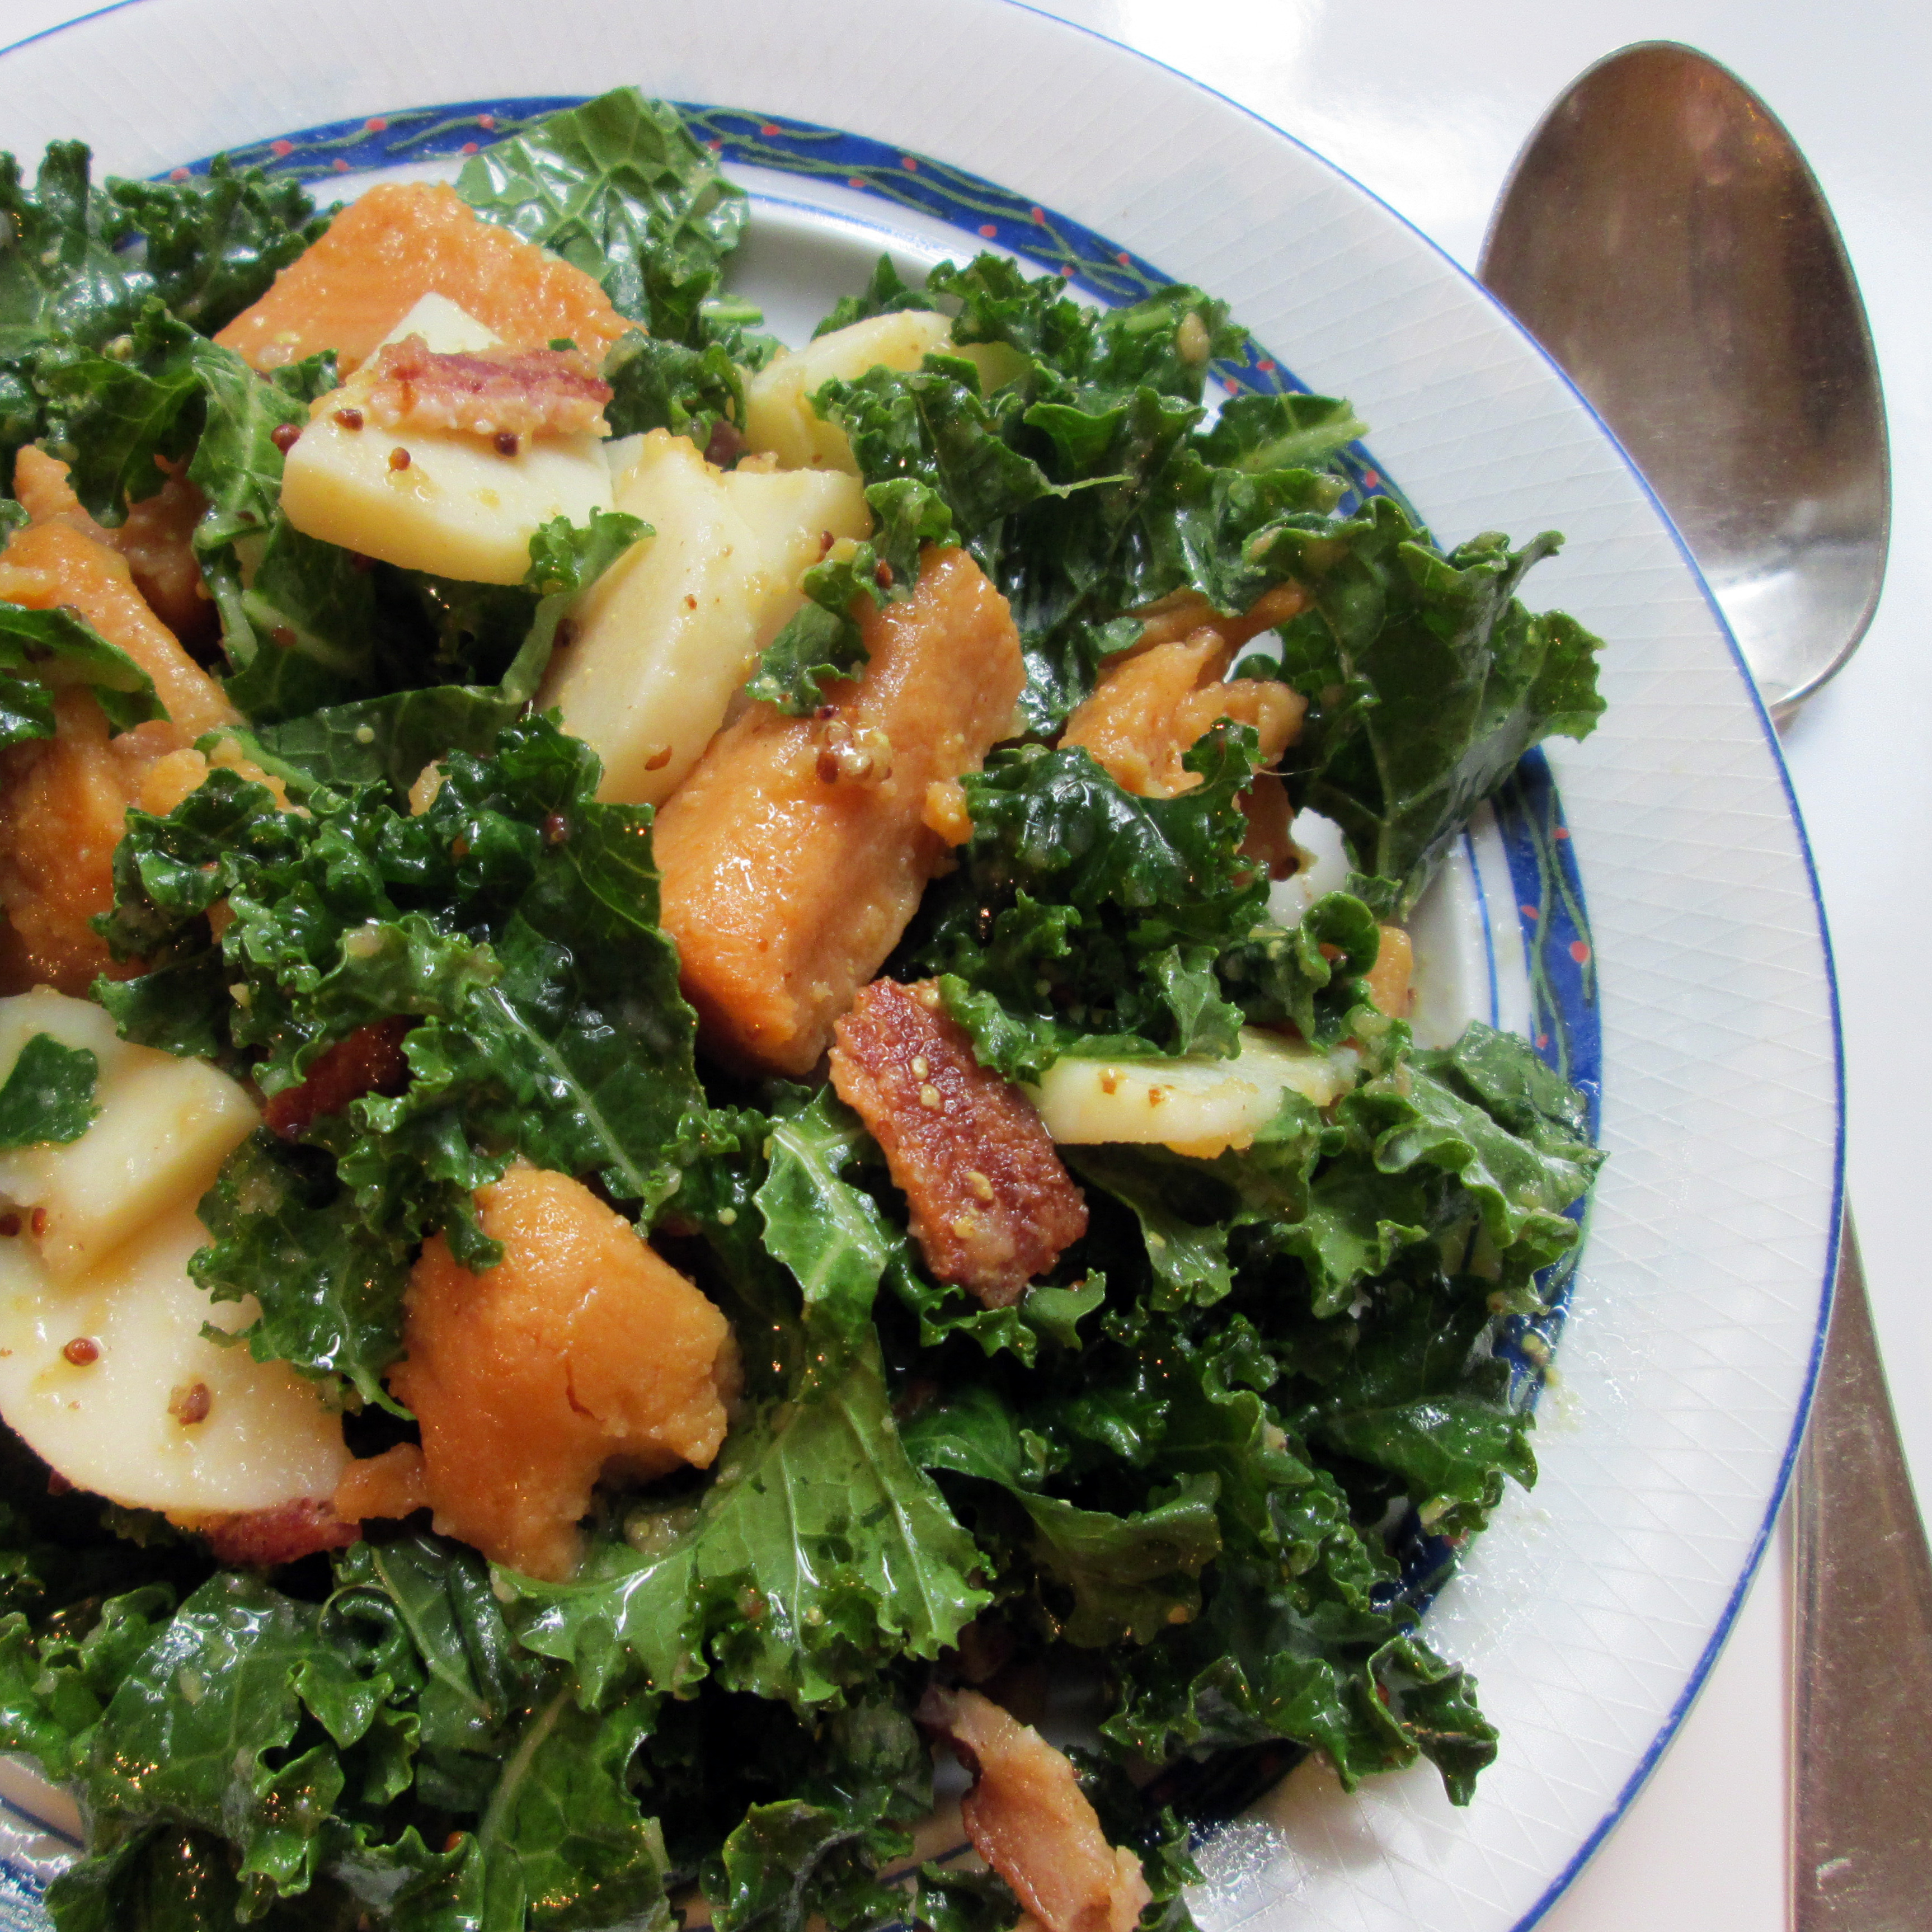 Yam And Russet Potato Salad With Greens And Bacon